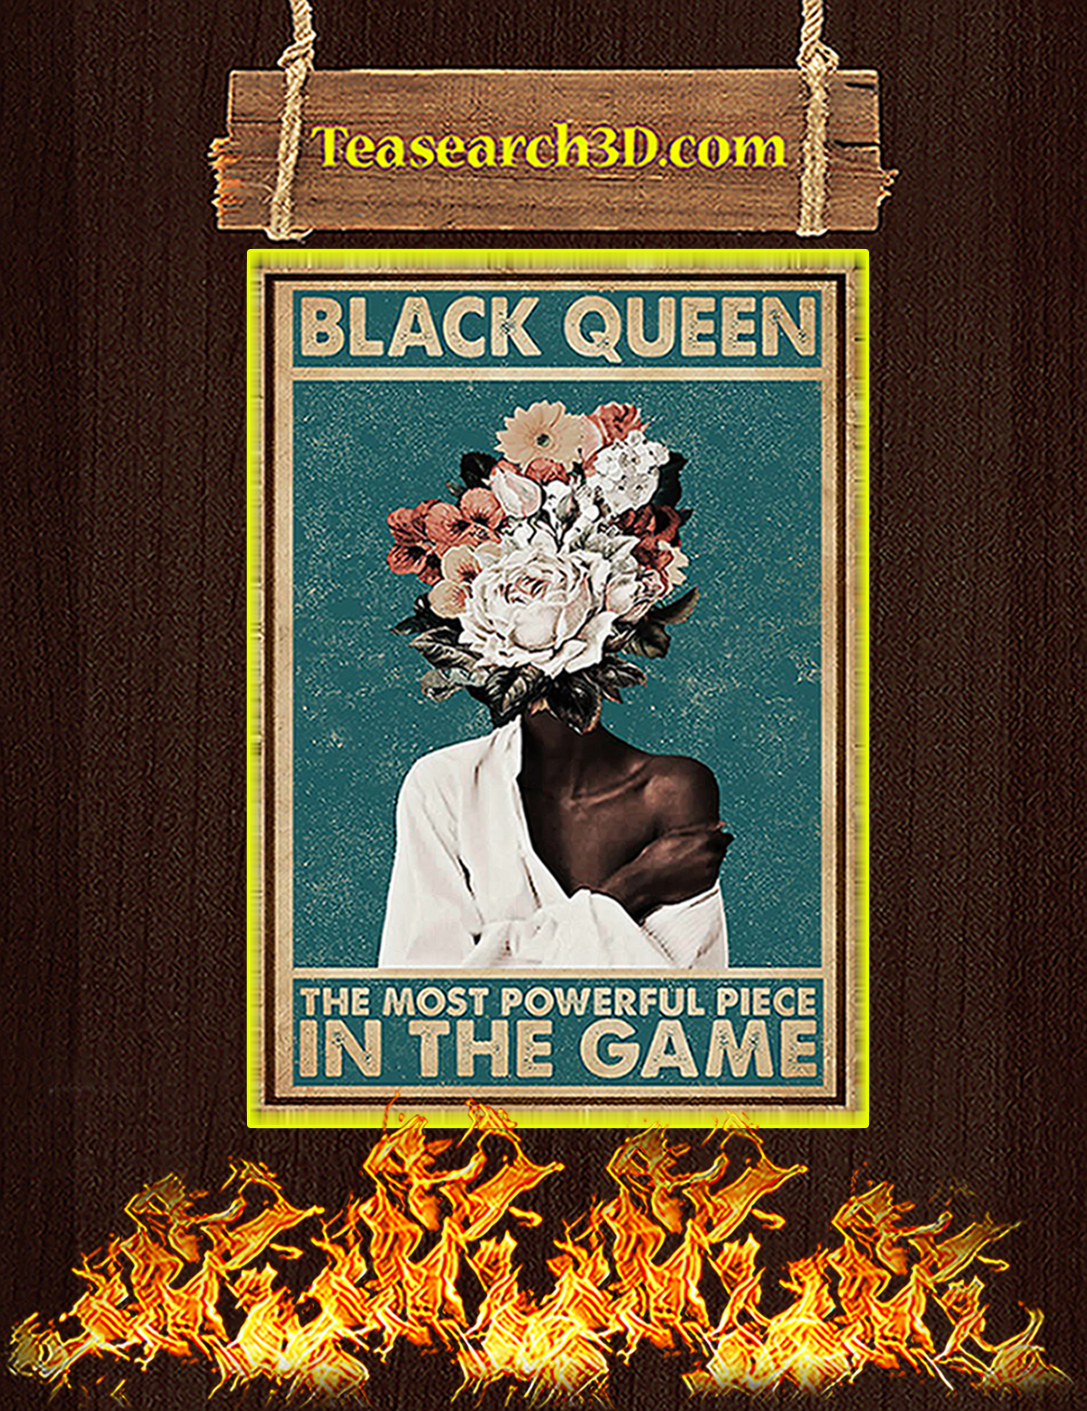 Flower black queen the most powerful piece in the game poster A2